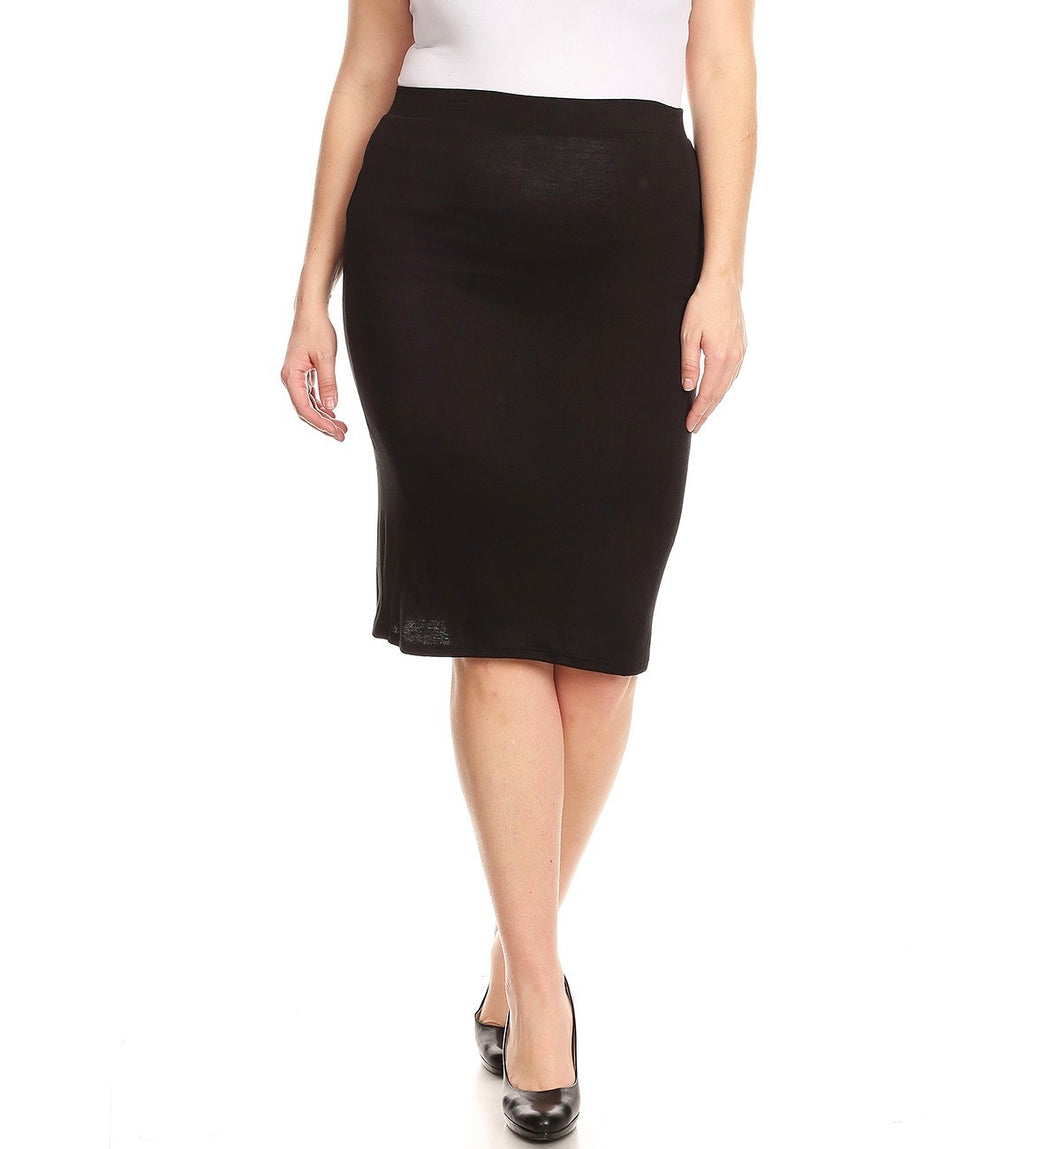 Plus Black Stretch Skirt